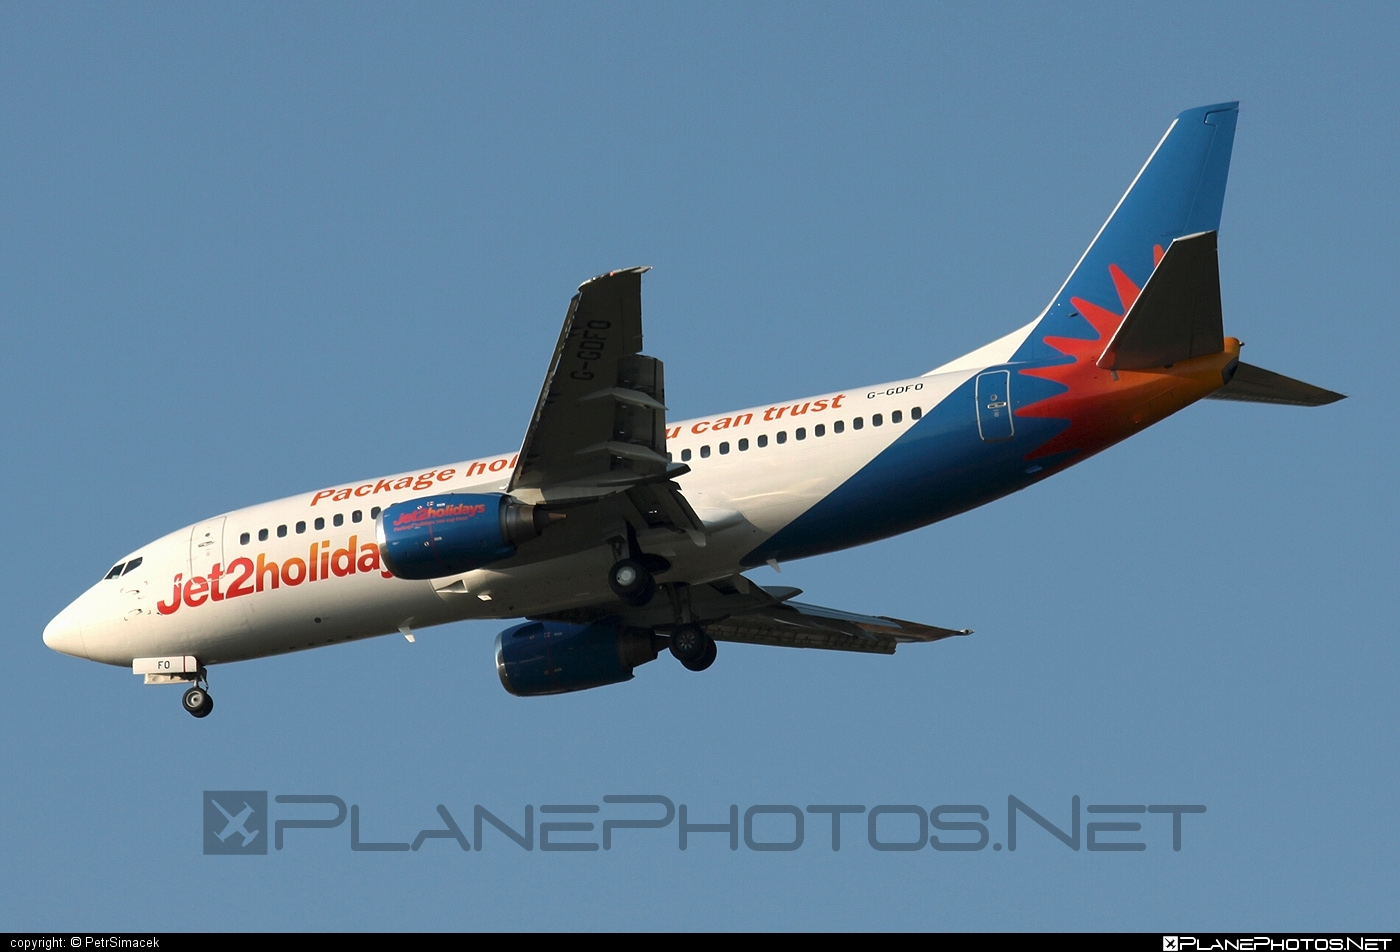 Boeing 737-300 - G-GDFO operated by Jet2 #b737 #boeing #boeing737 #jet2